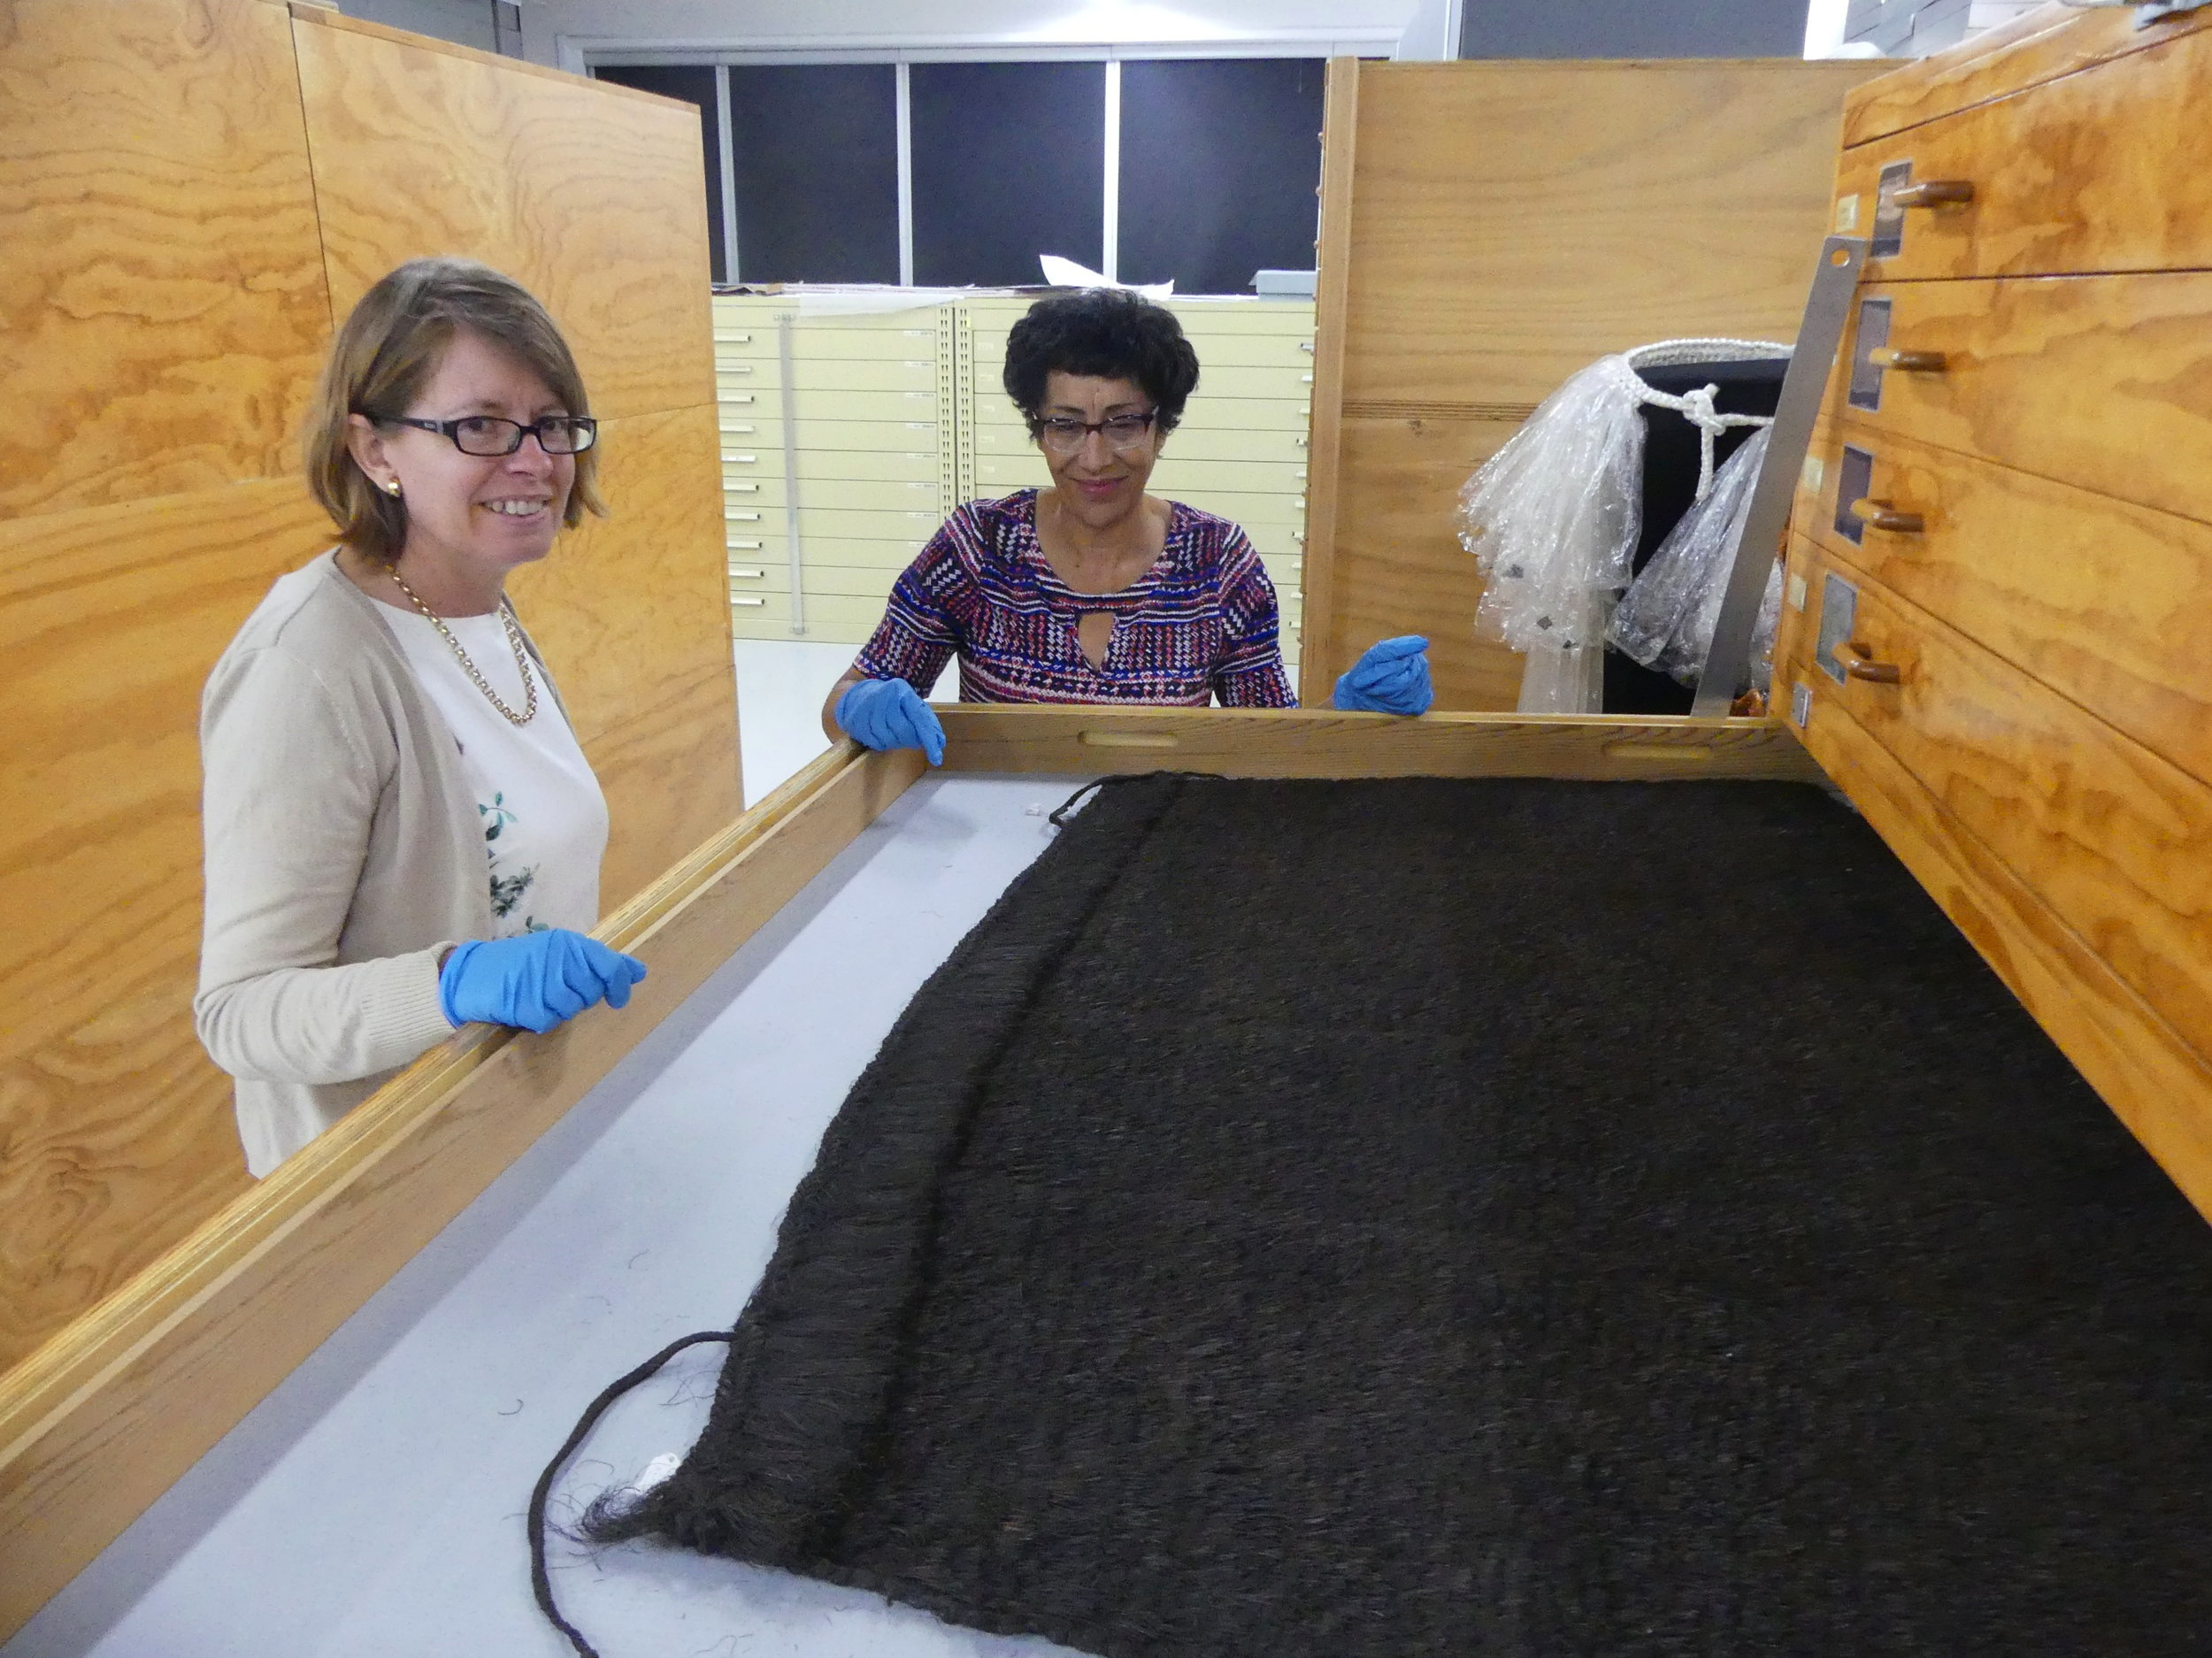 GNS Science forensic geochemist Karyne Rogers and Te Papa textile conservator and researcher Rangi Te Kanawa, Te Papa archives (image by Jacqui Gibson).